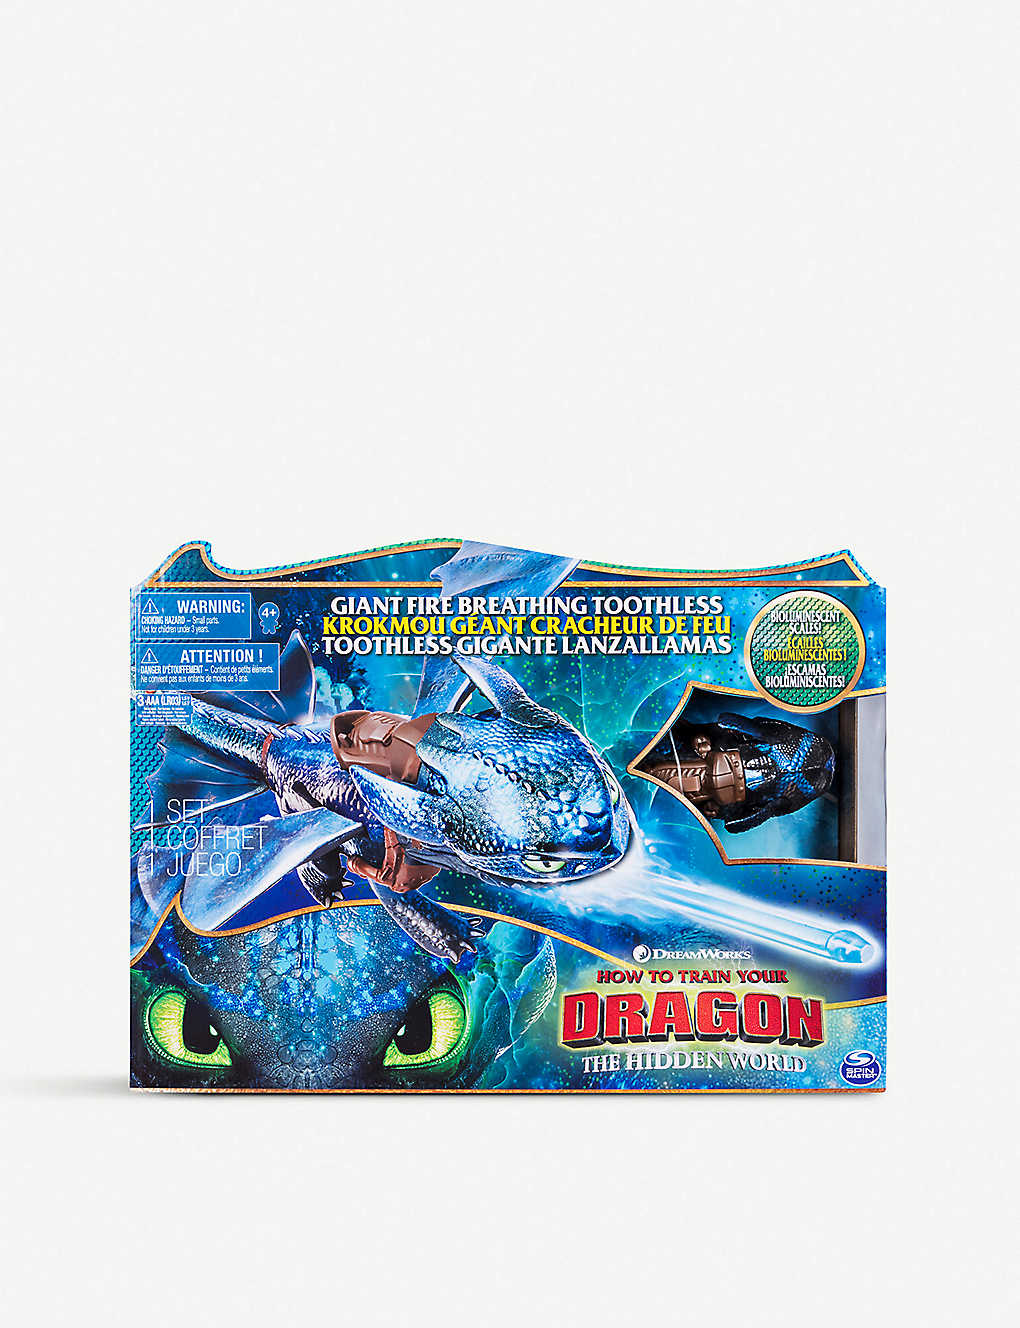 Aaa Com Myaccount >> How To Train A Dragon Fire Breathing Toothless Toy